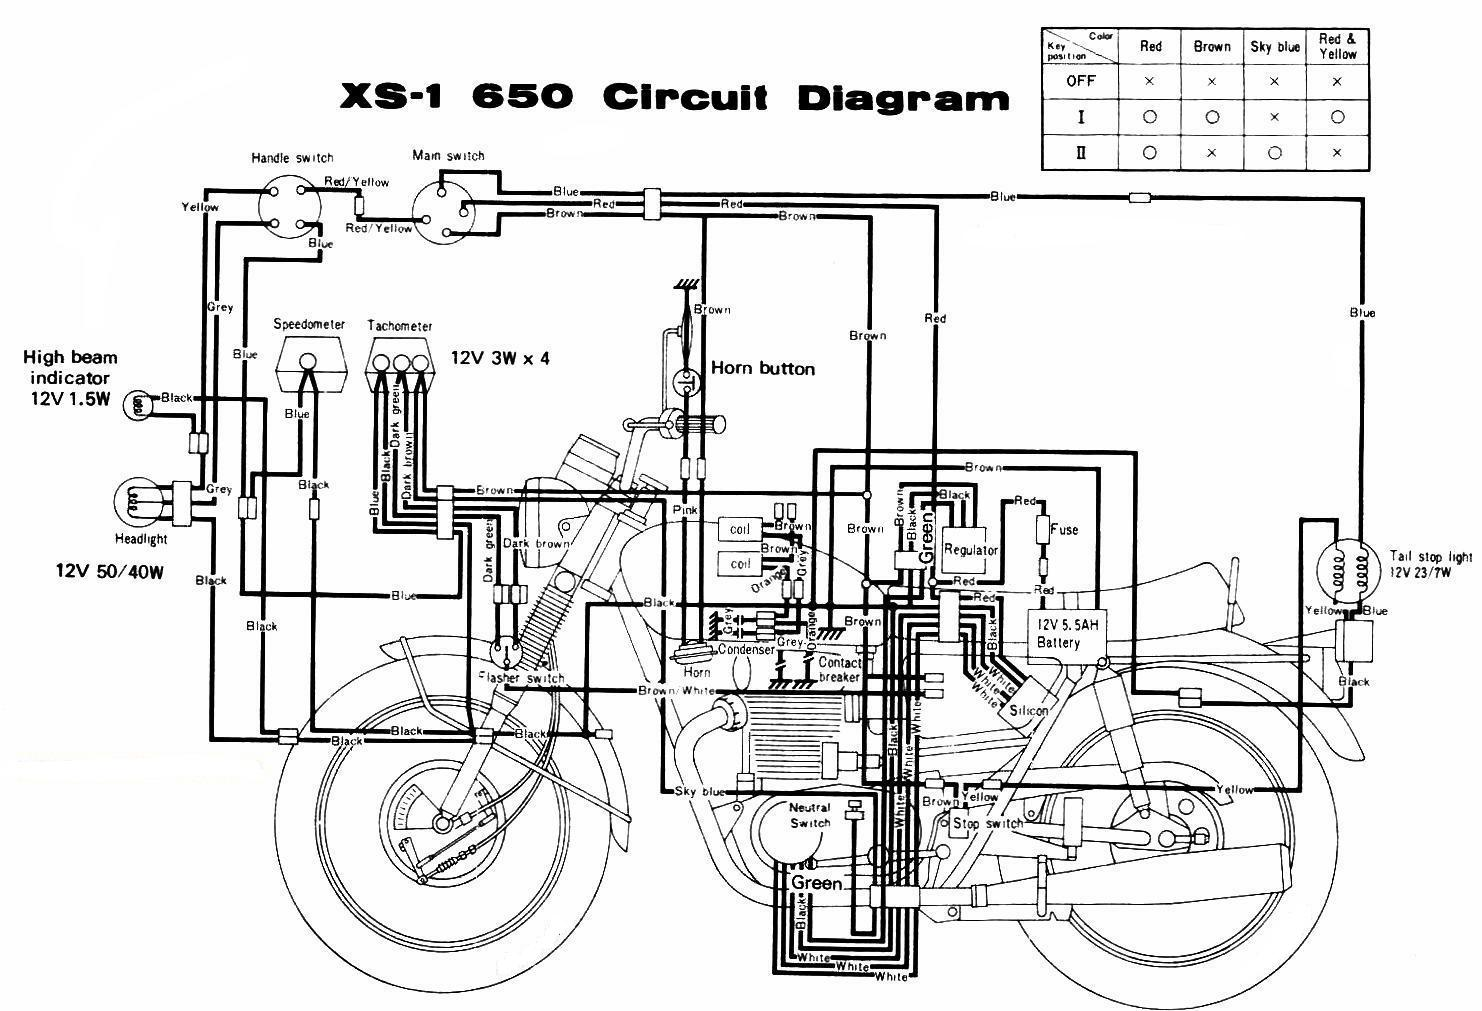 WRG-9303] Xs650 Chopper Wiring Harness 1973 on